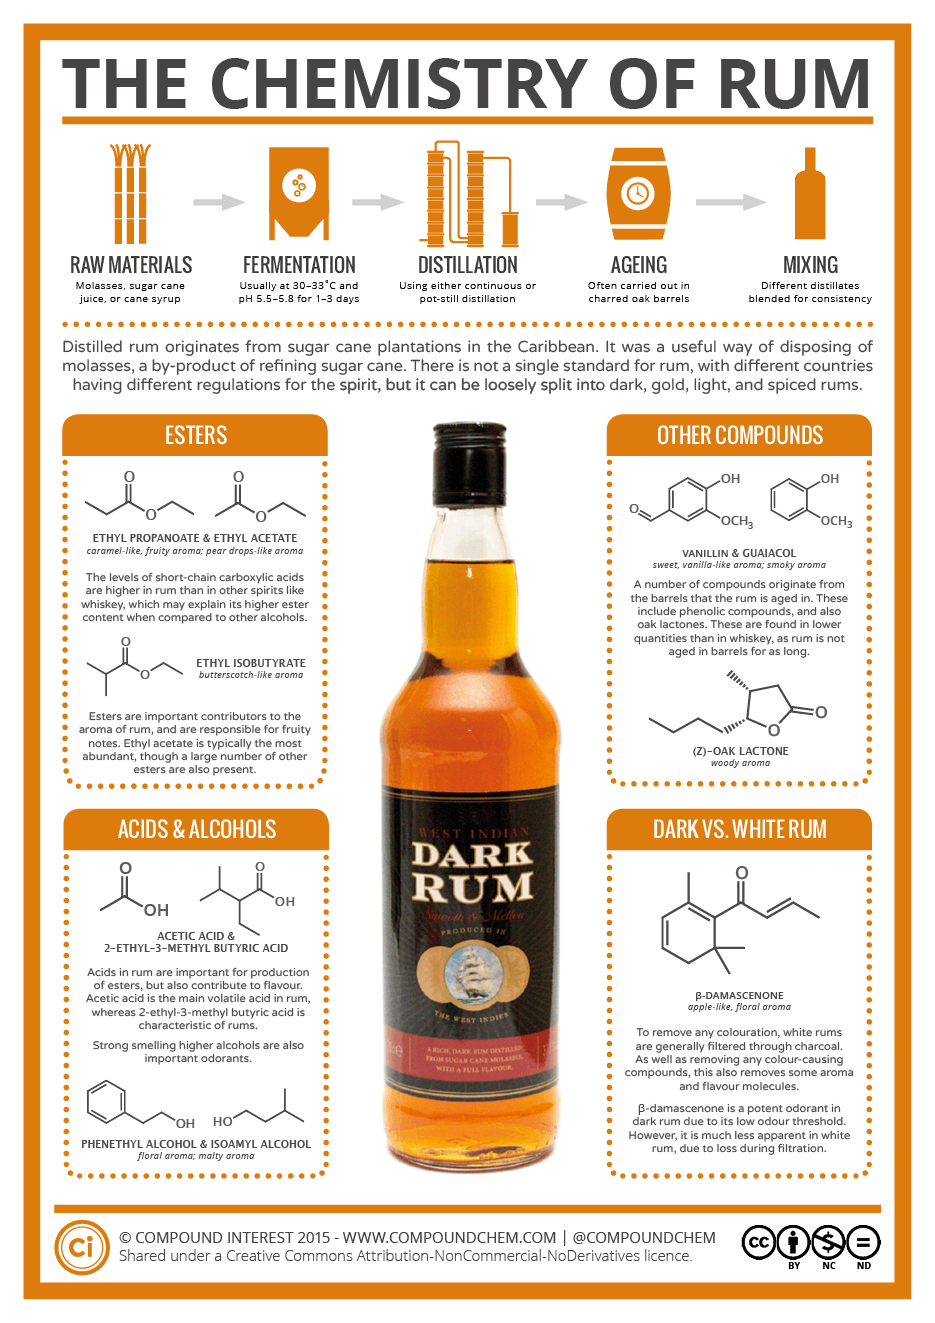 The Chemistry of Rum